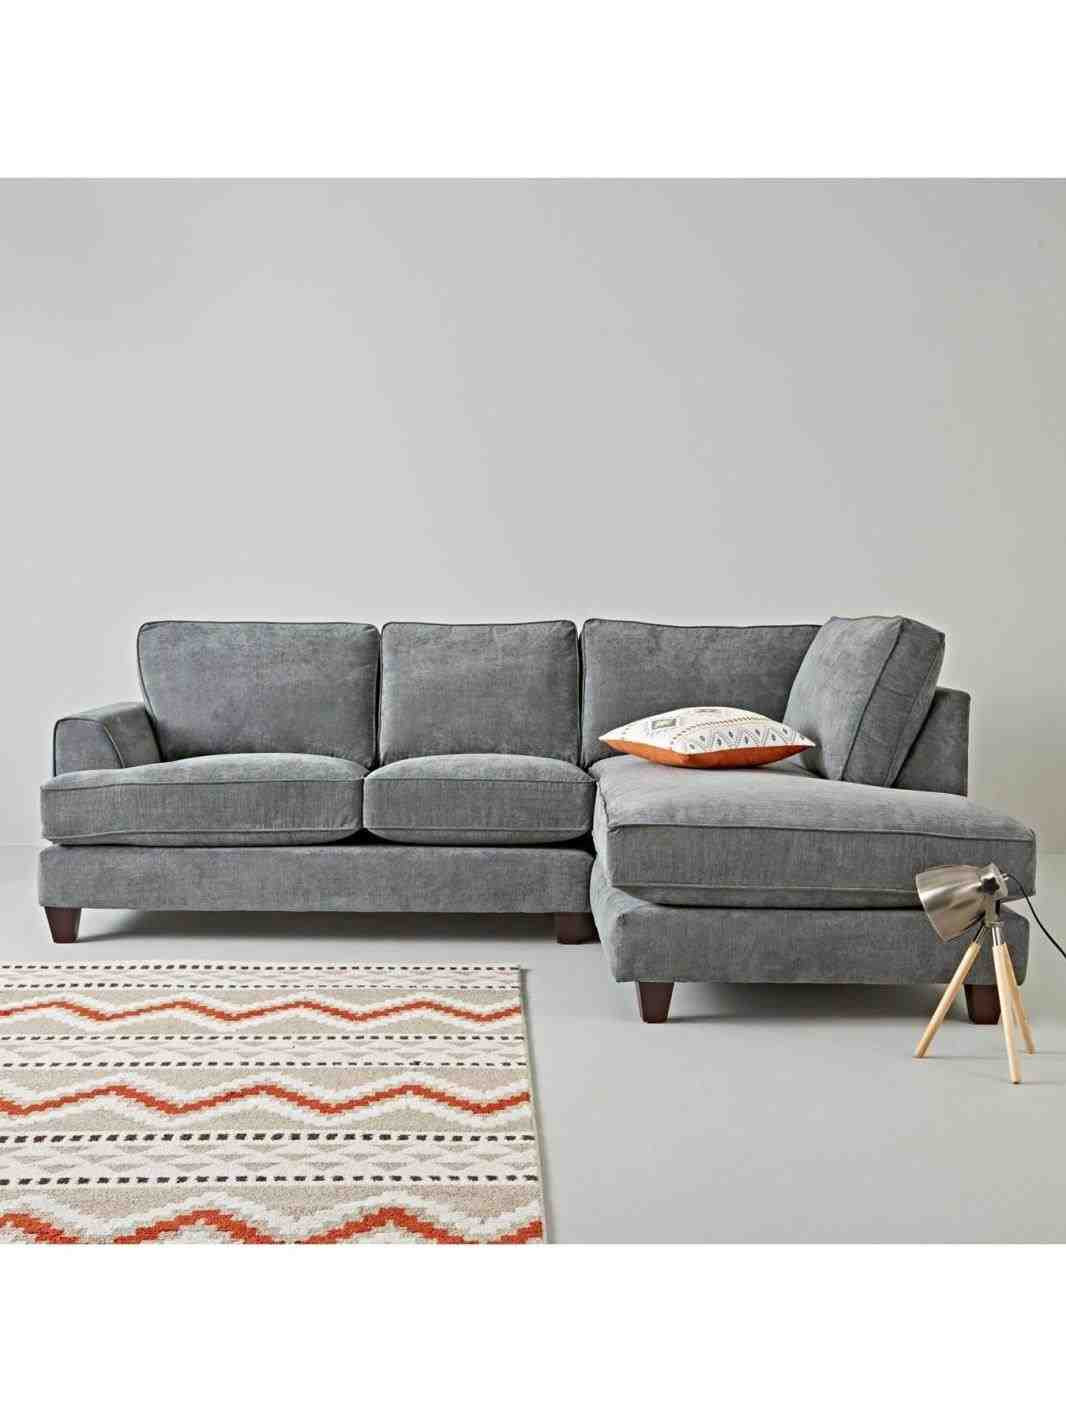 sofa chaise longue 5 plazas